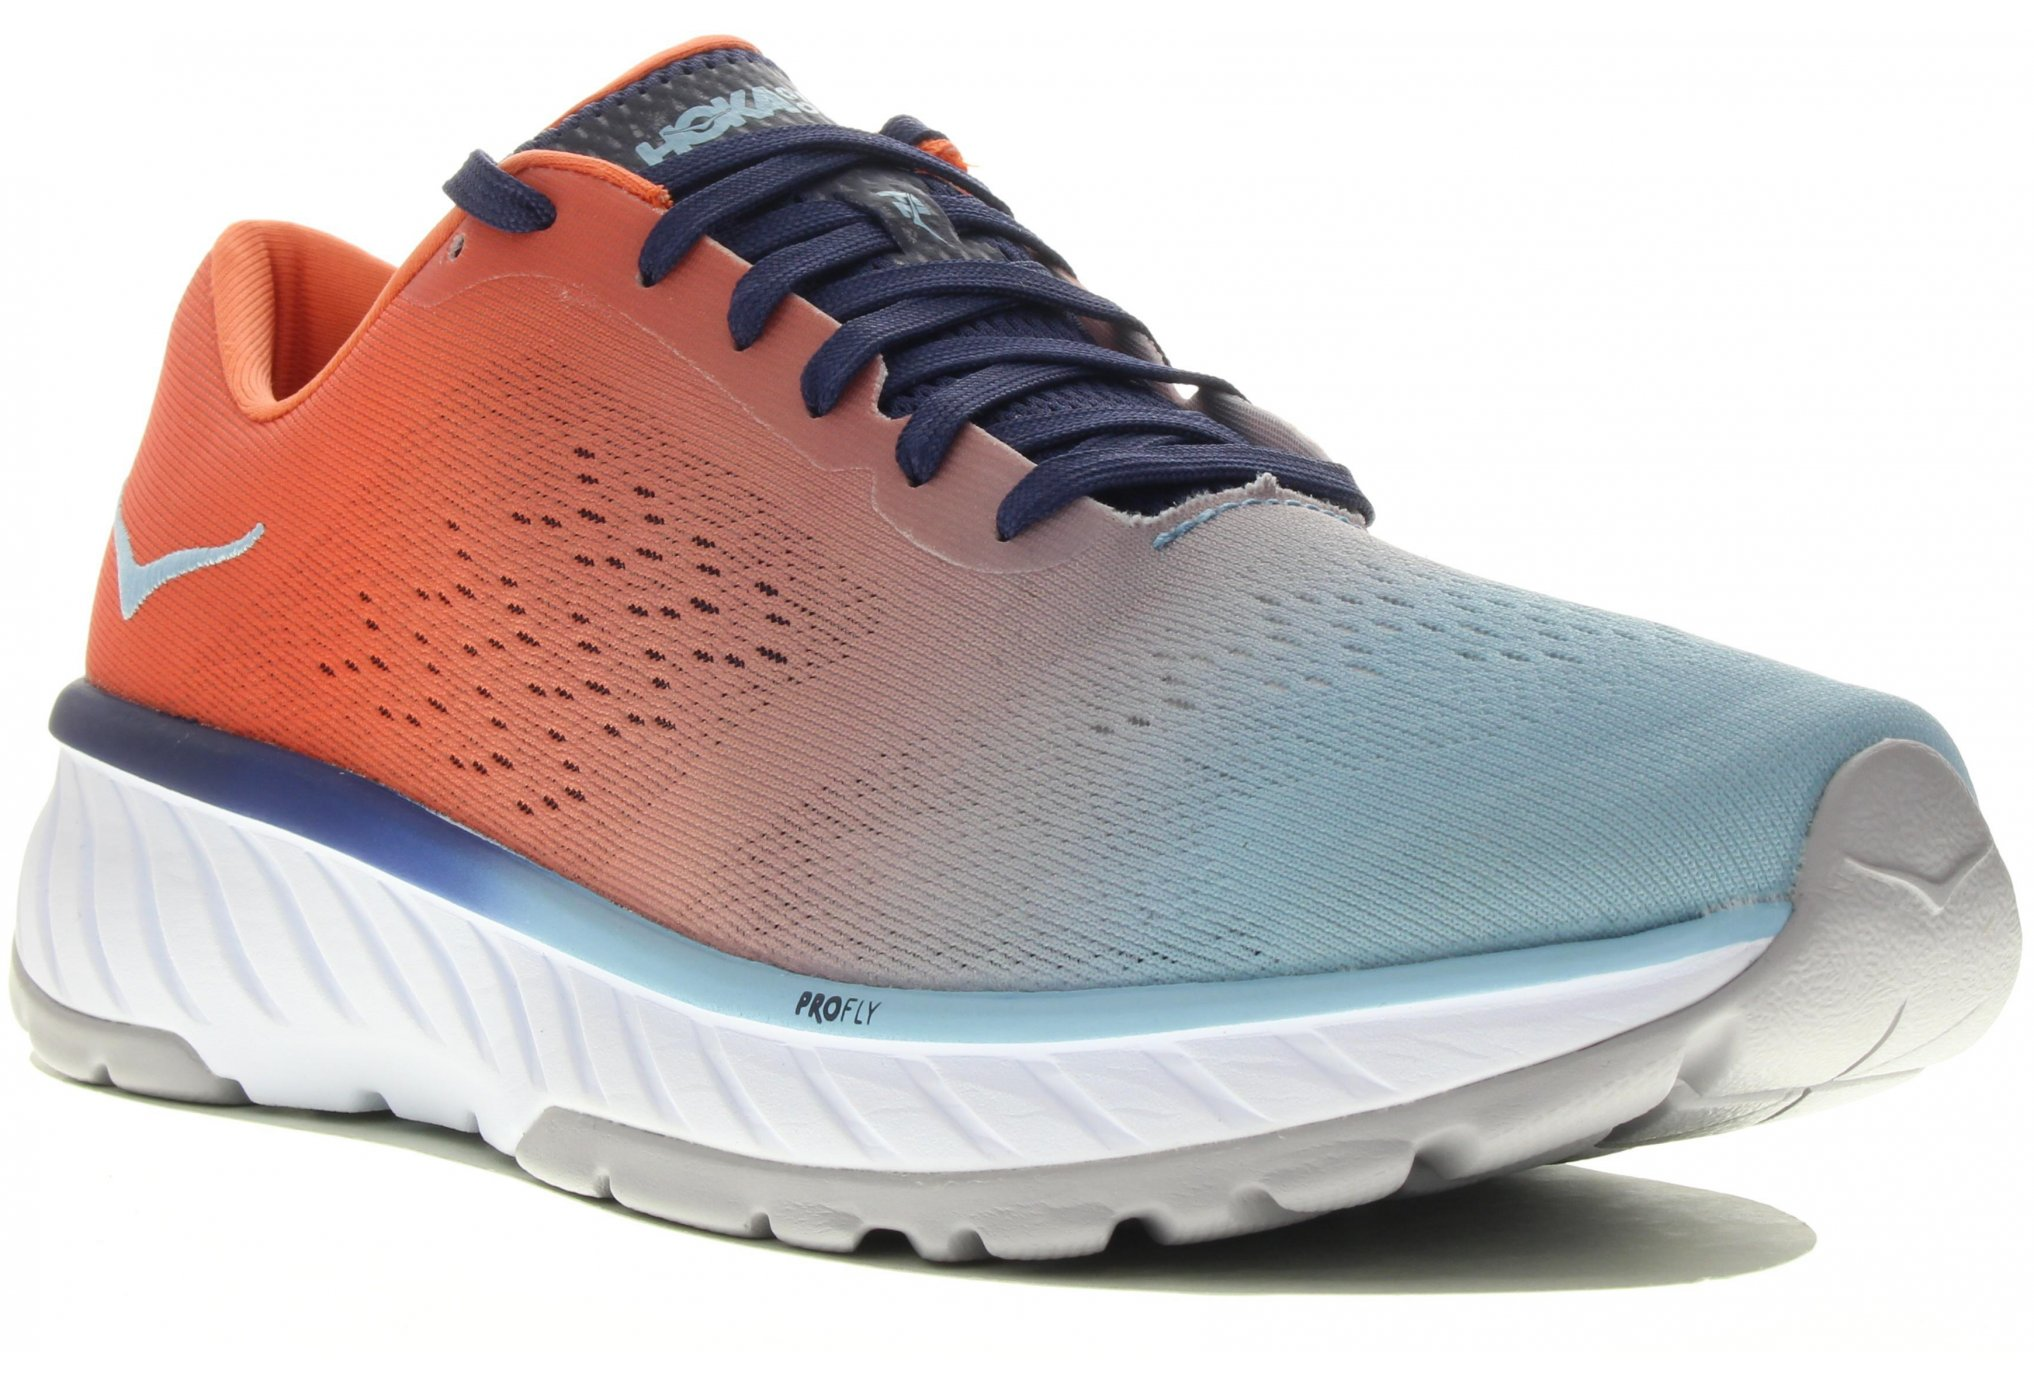 Hoka One one cavu 2 m chaussures homme